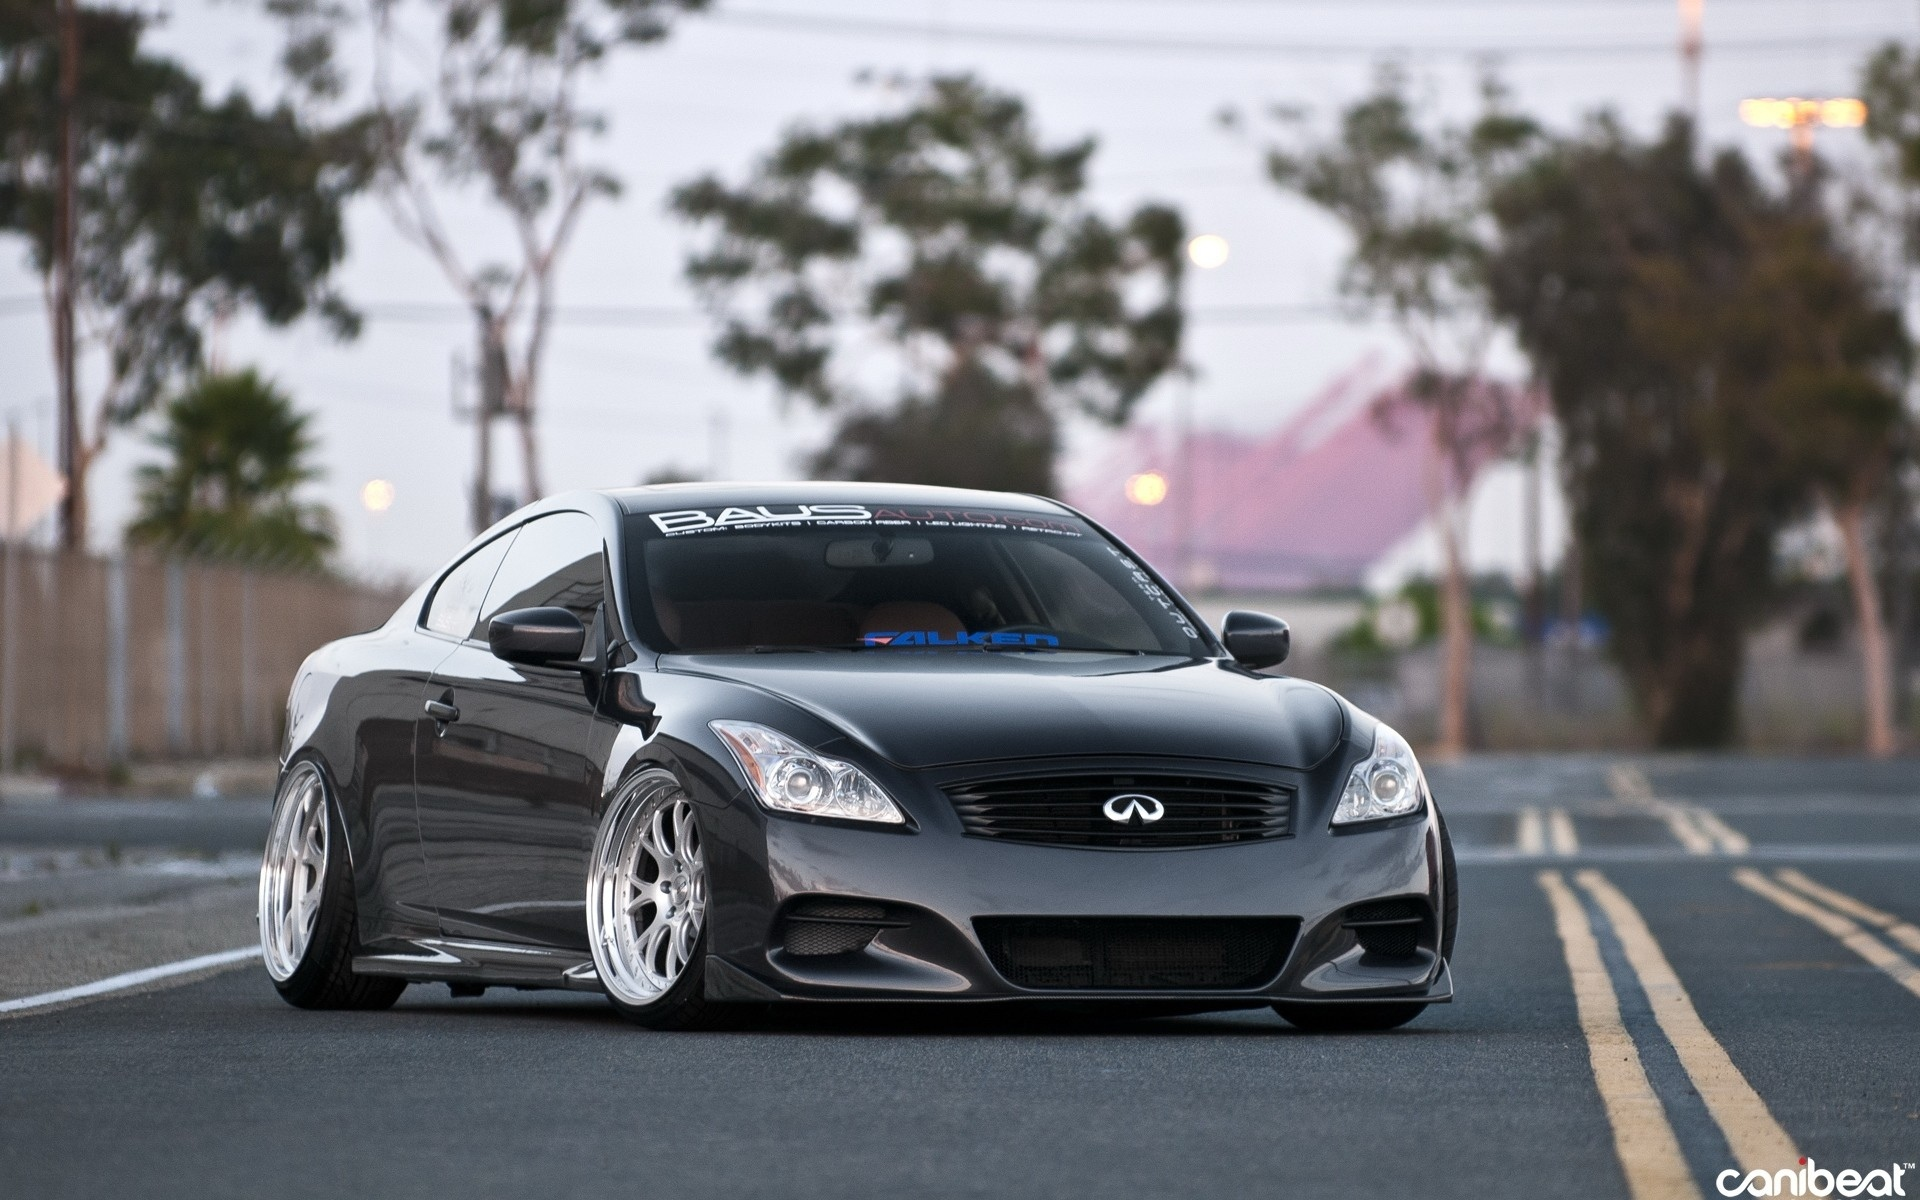 Infiniti G37 Vehicles Cars Auto Tuning Stance Wheels Roads